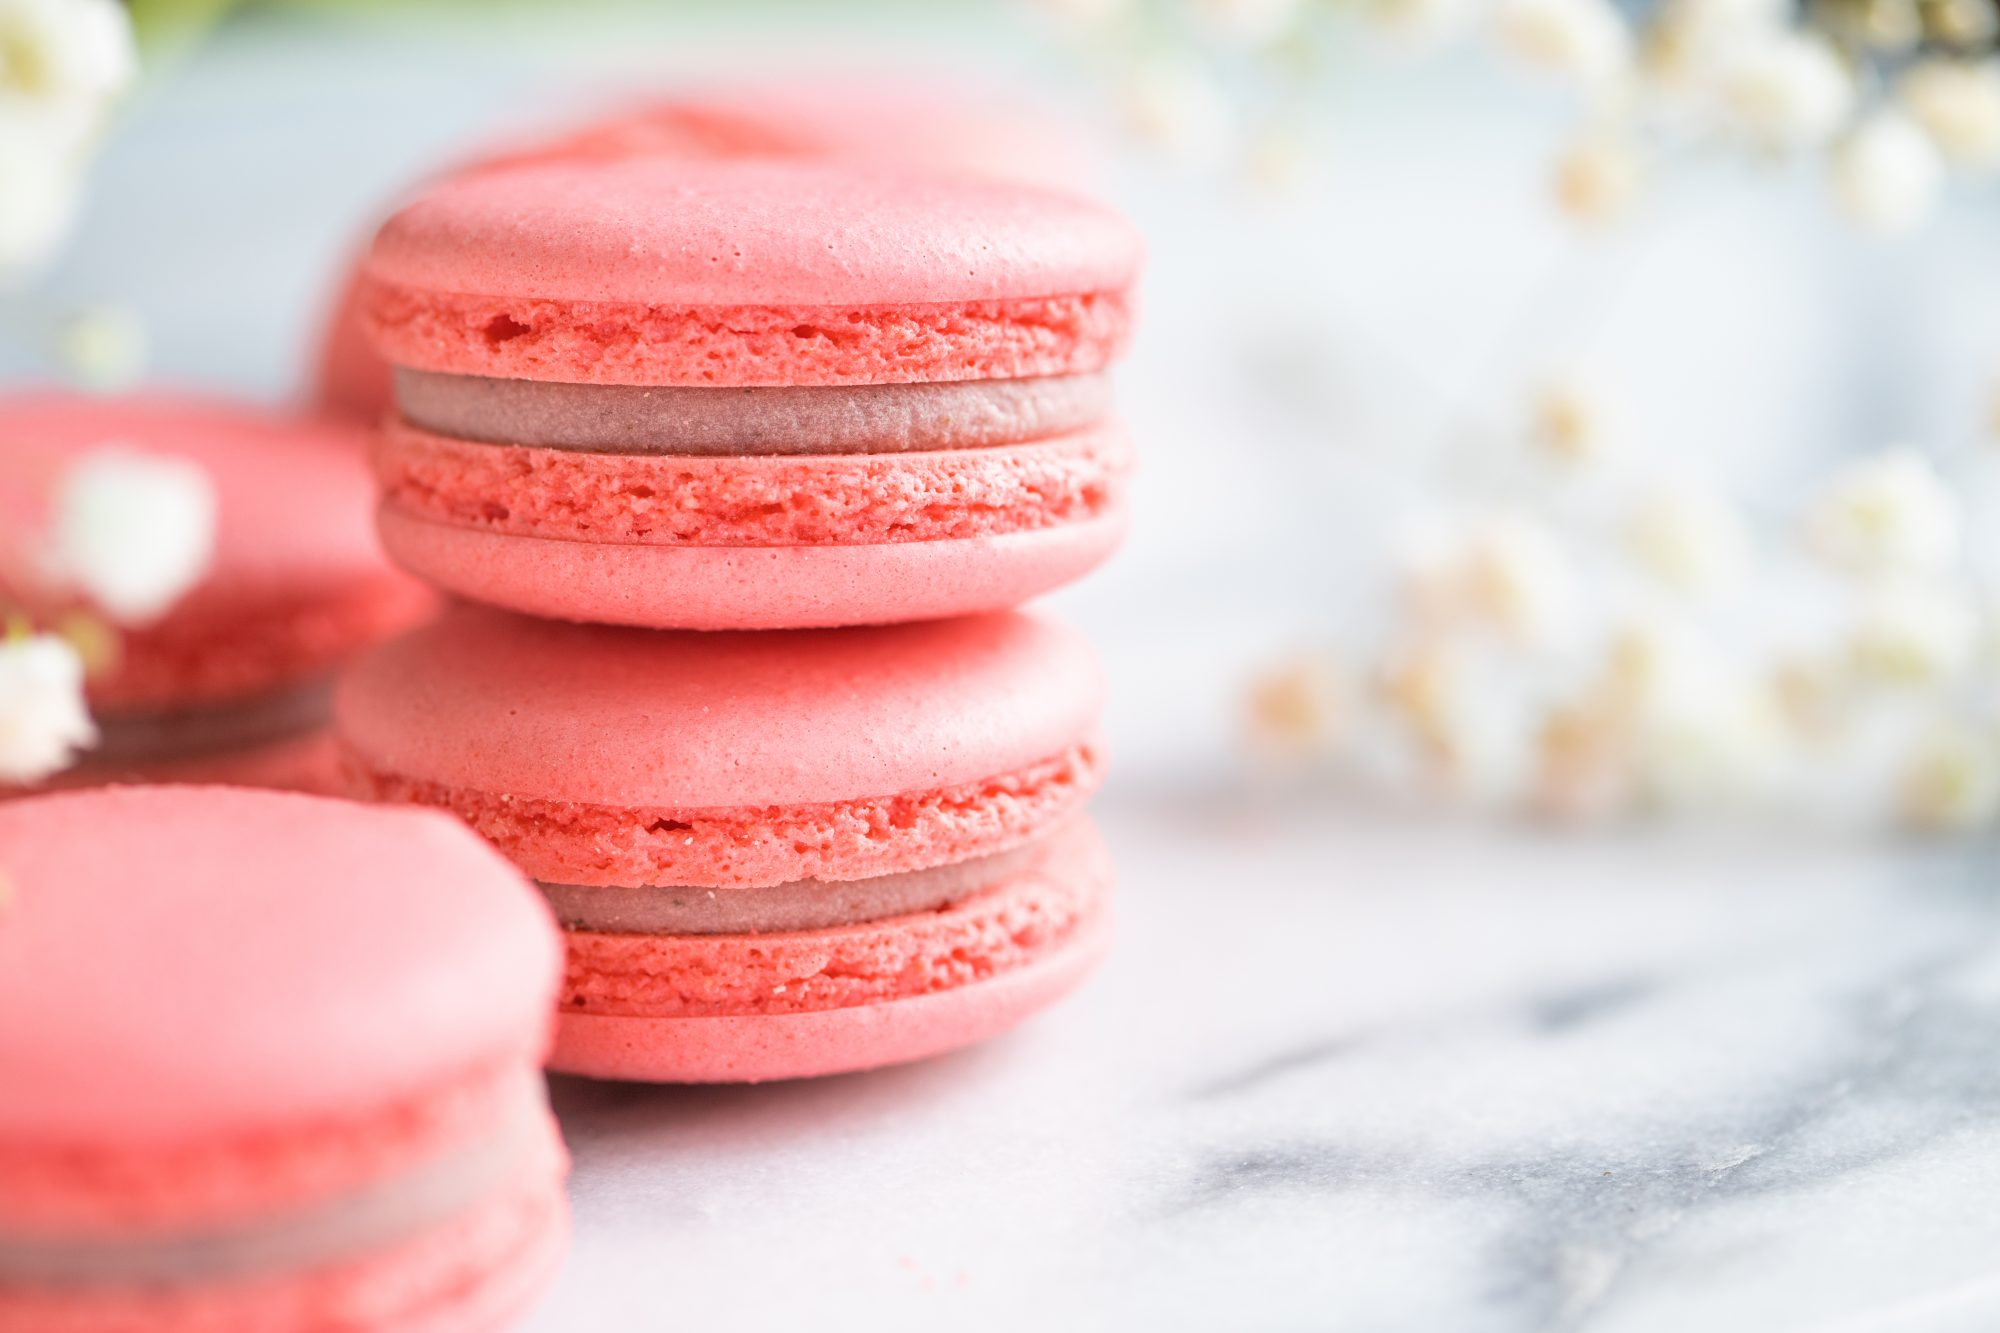 Coral Cakes Macarons Or Macaroons On White Marble Spring Background, Copy Space